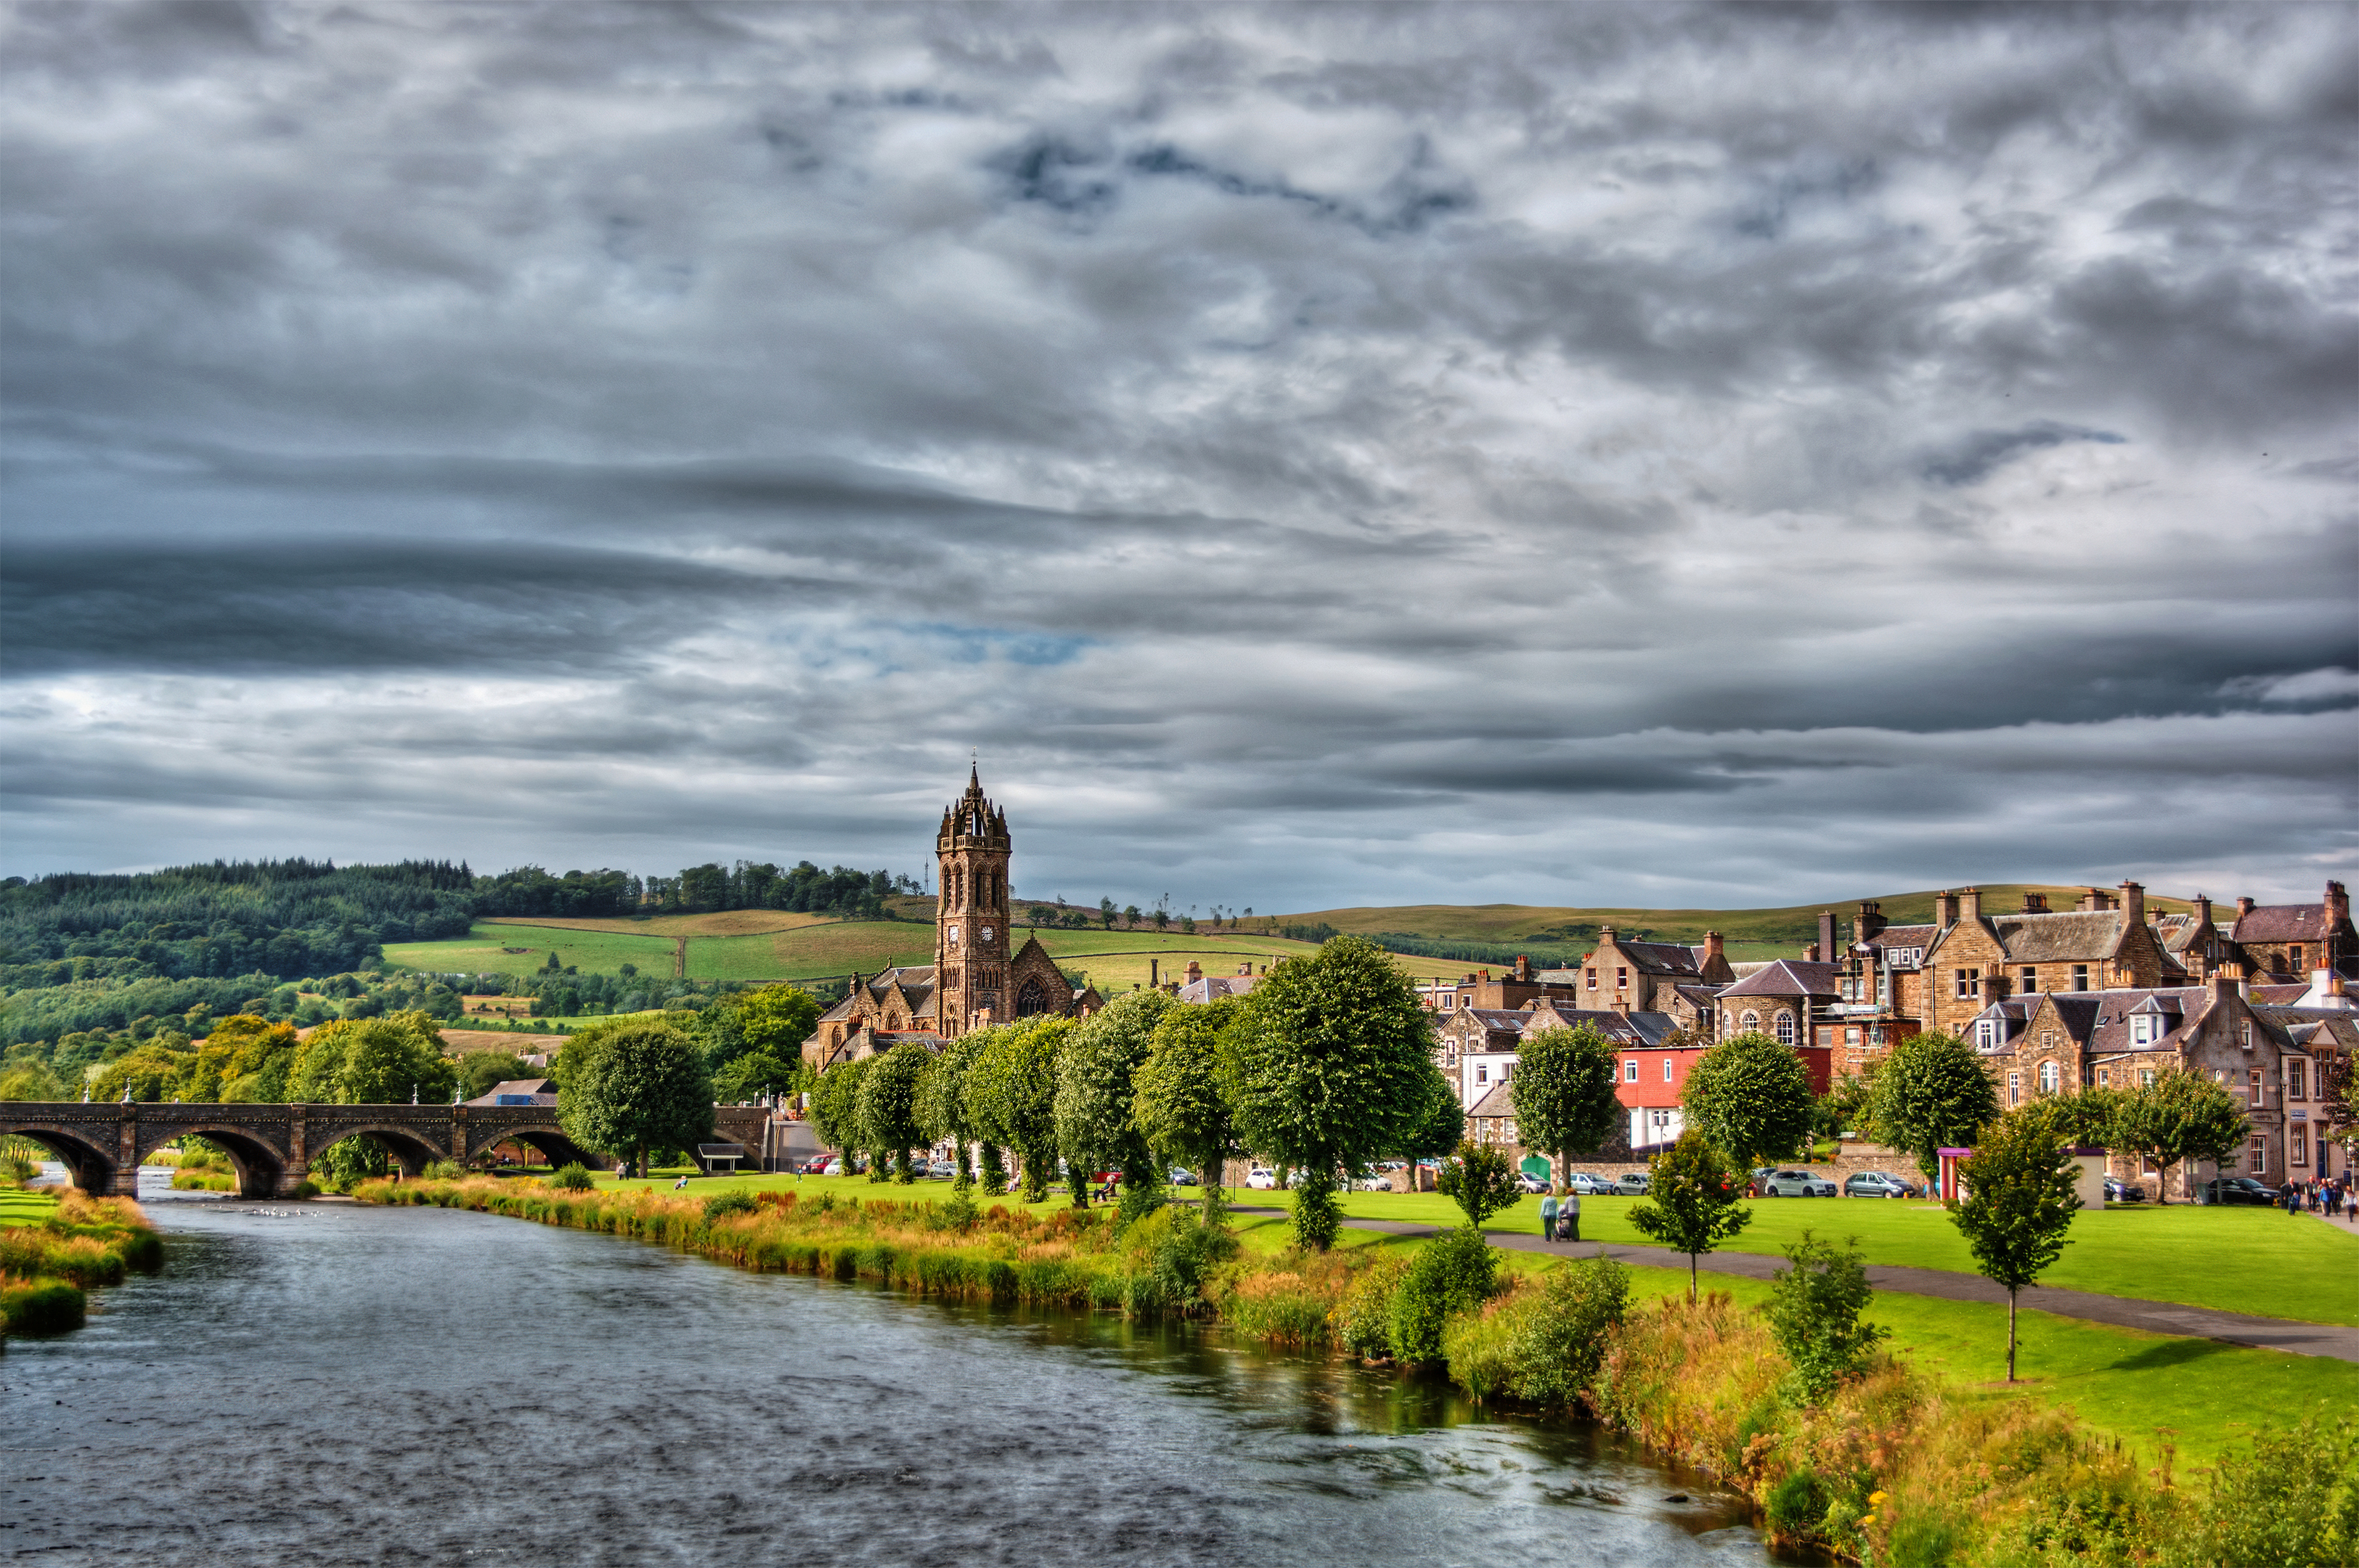 Peebles (Getty Images/iStock)